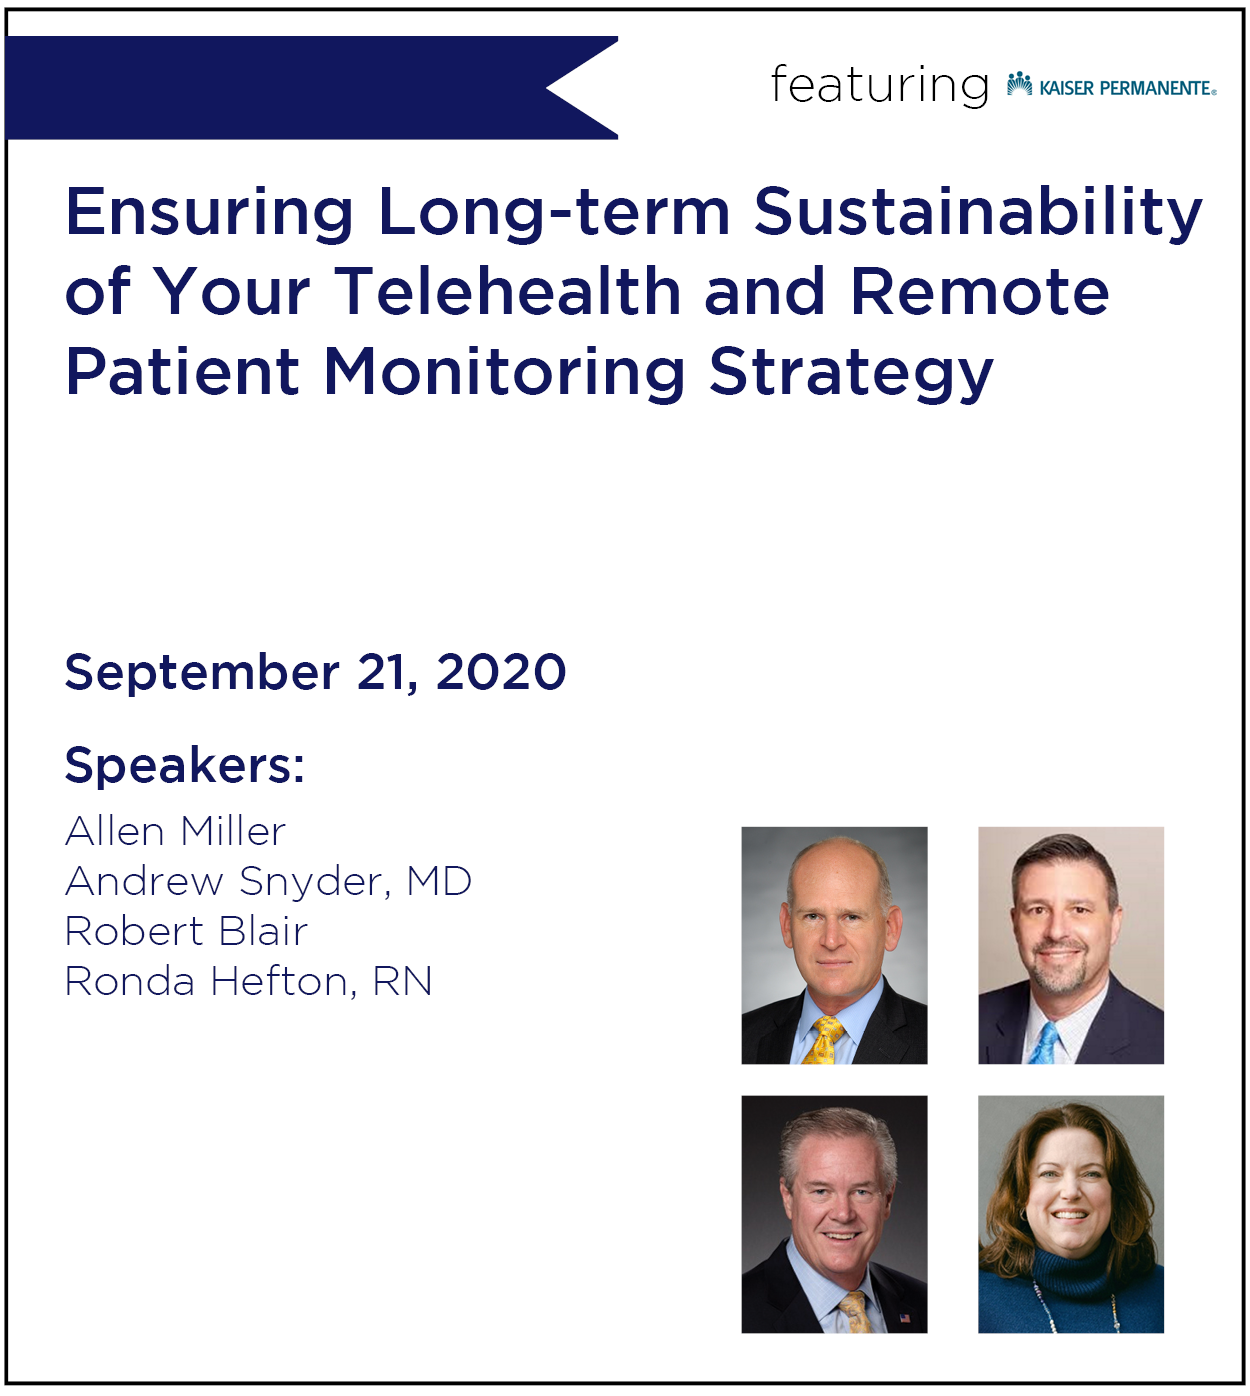 Ensuring Long-term Sustainability of Your Telehealth and Remote Patient Monitoring